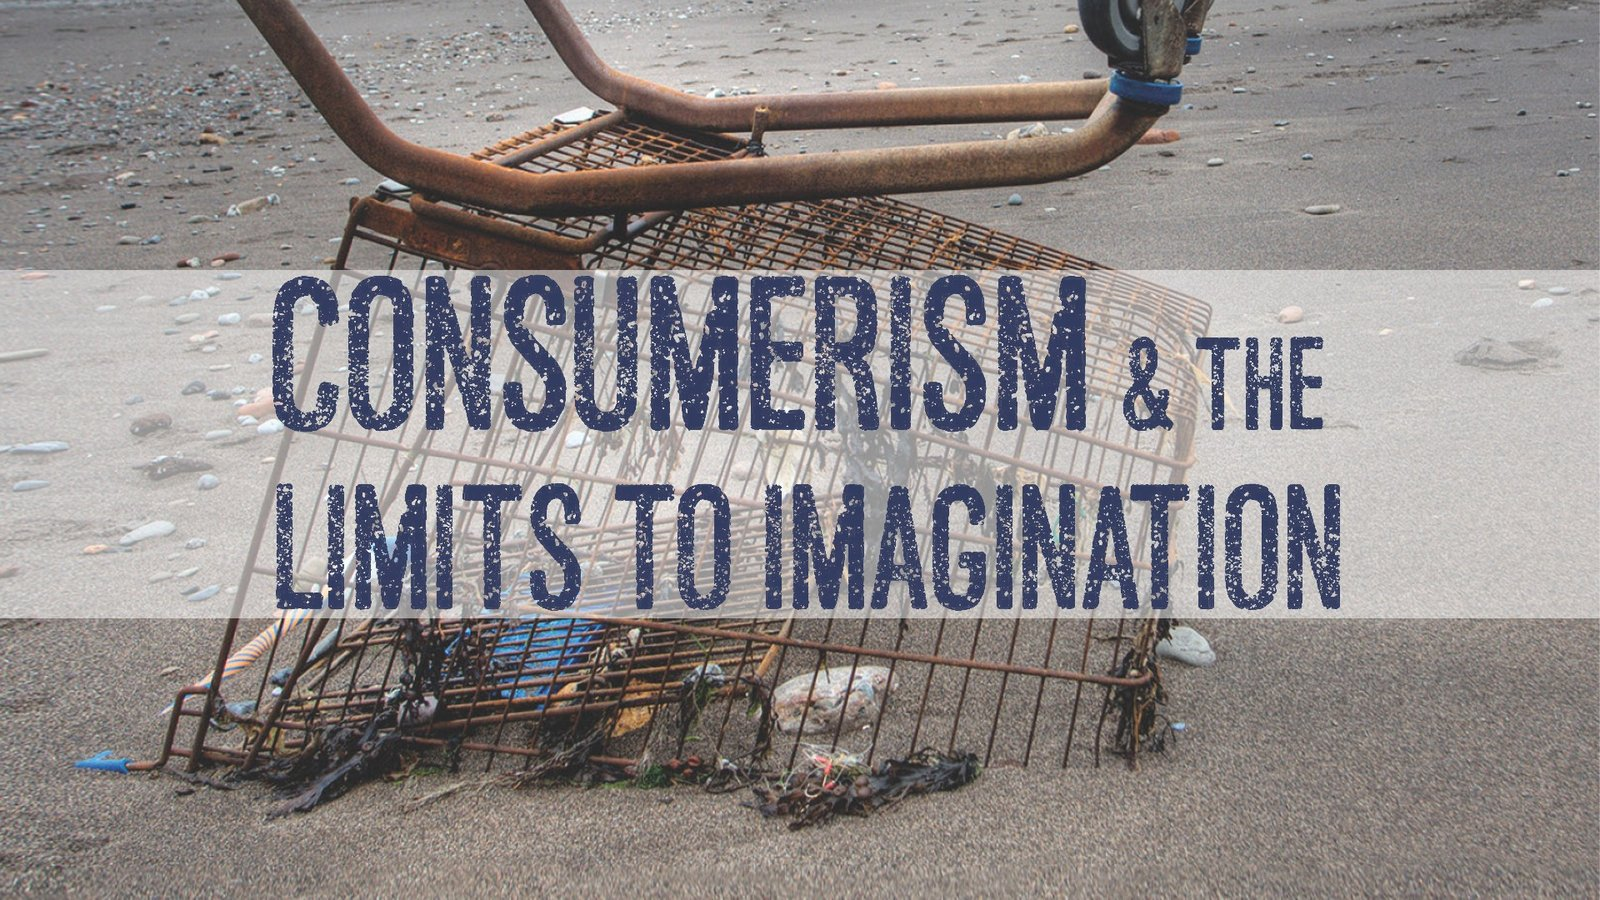 Consumerism & the Limits to Imagination